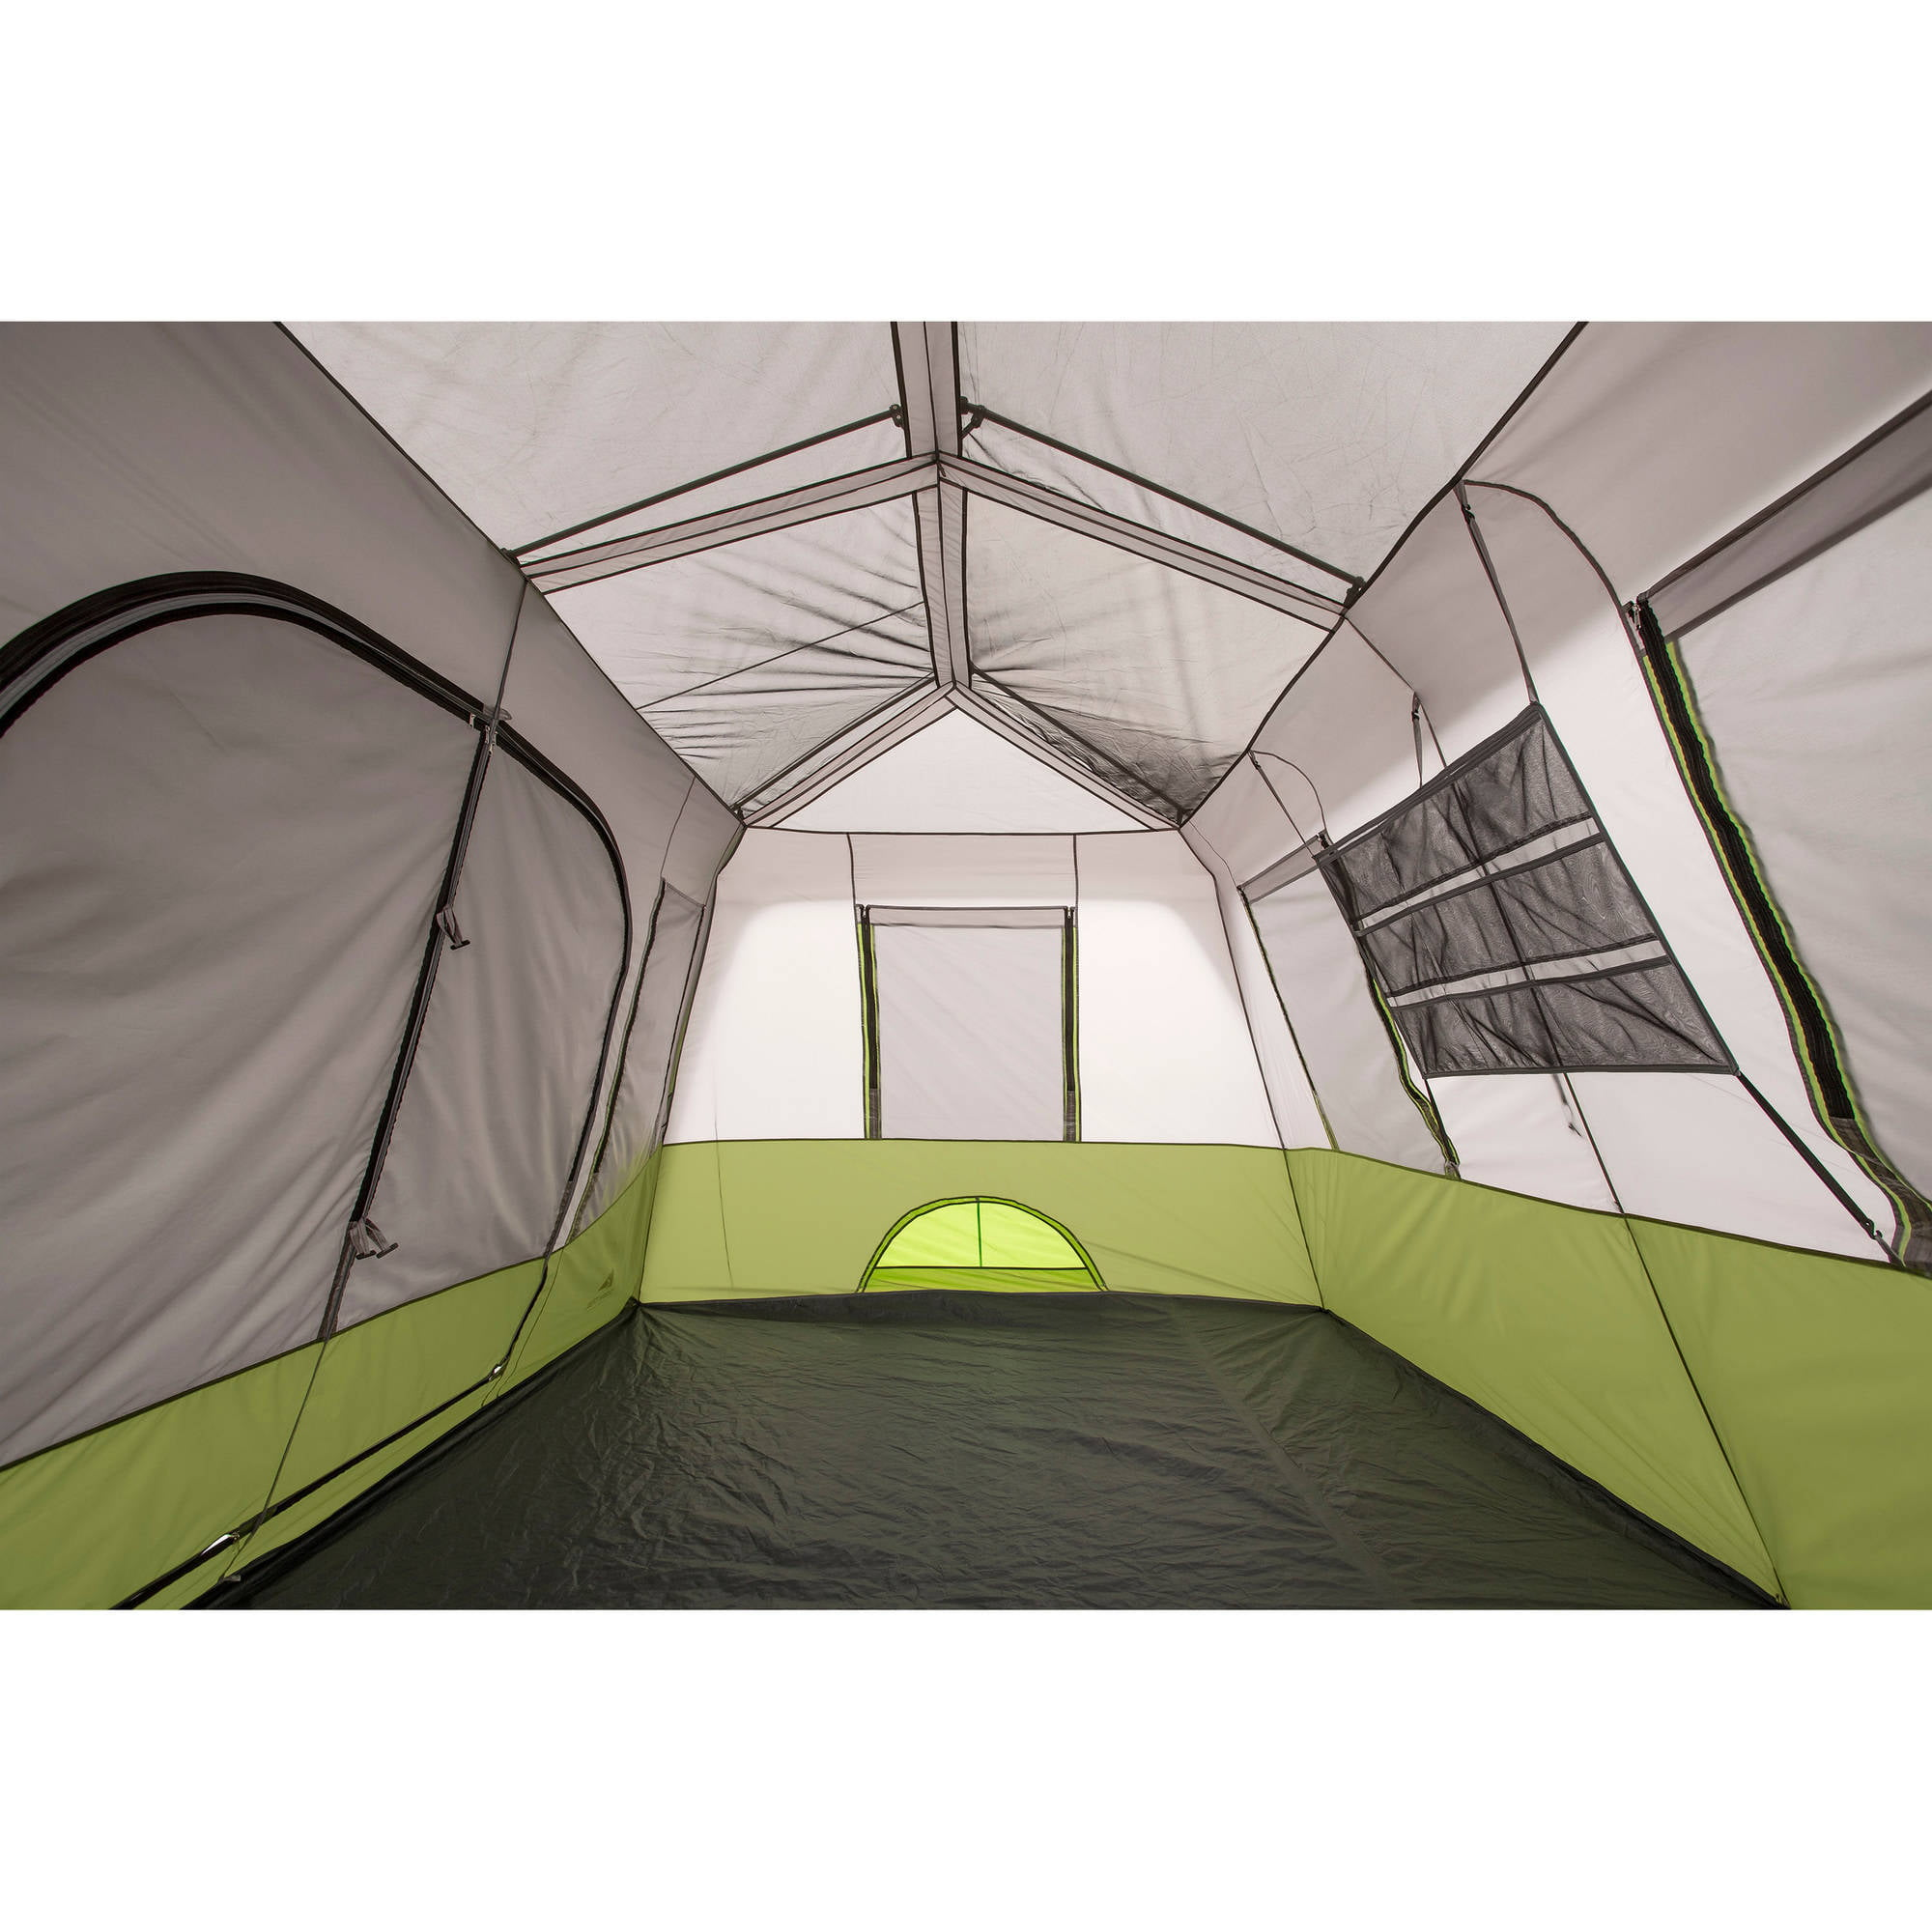 Ozark Trail 9 Person 2 Room Instant Cabin Tent with Screen Room - Walmart.com  sc 1 st  Walmart : ozark trail tents 4 person - memphite.com